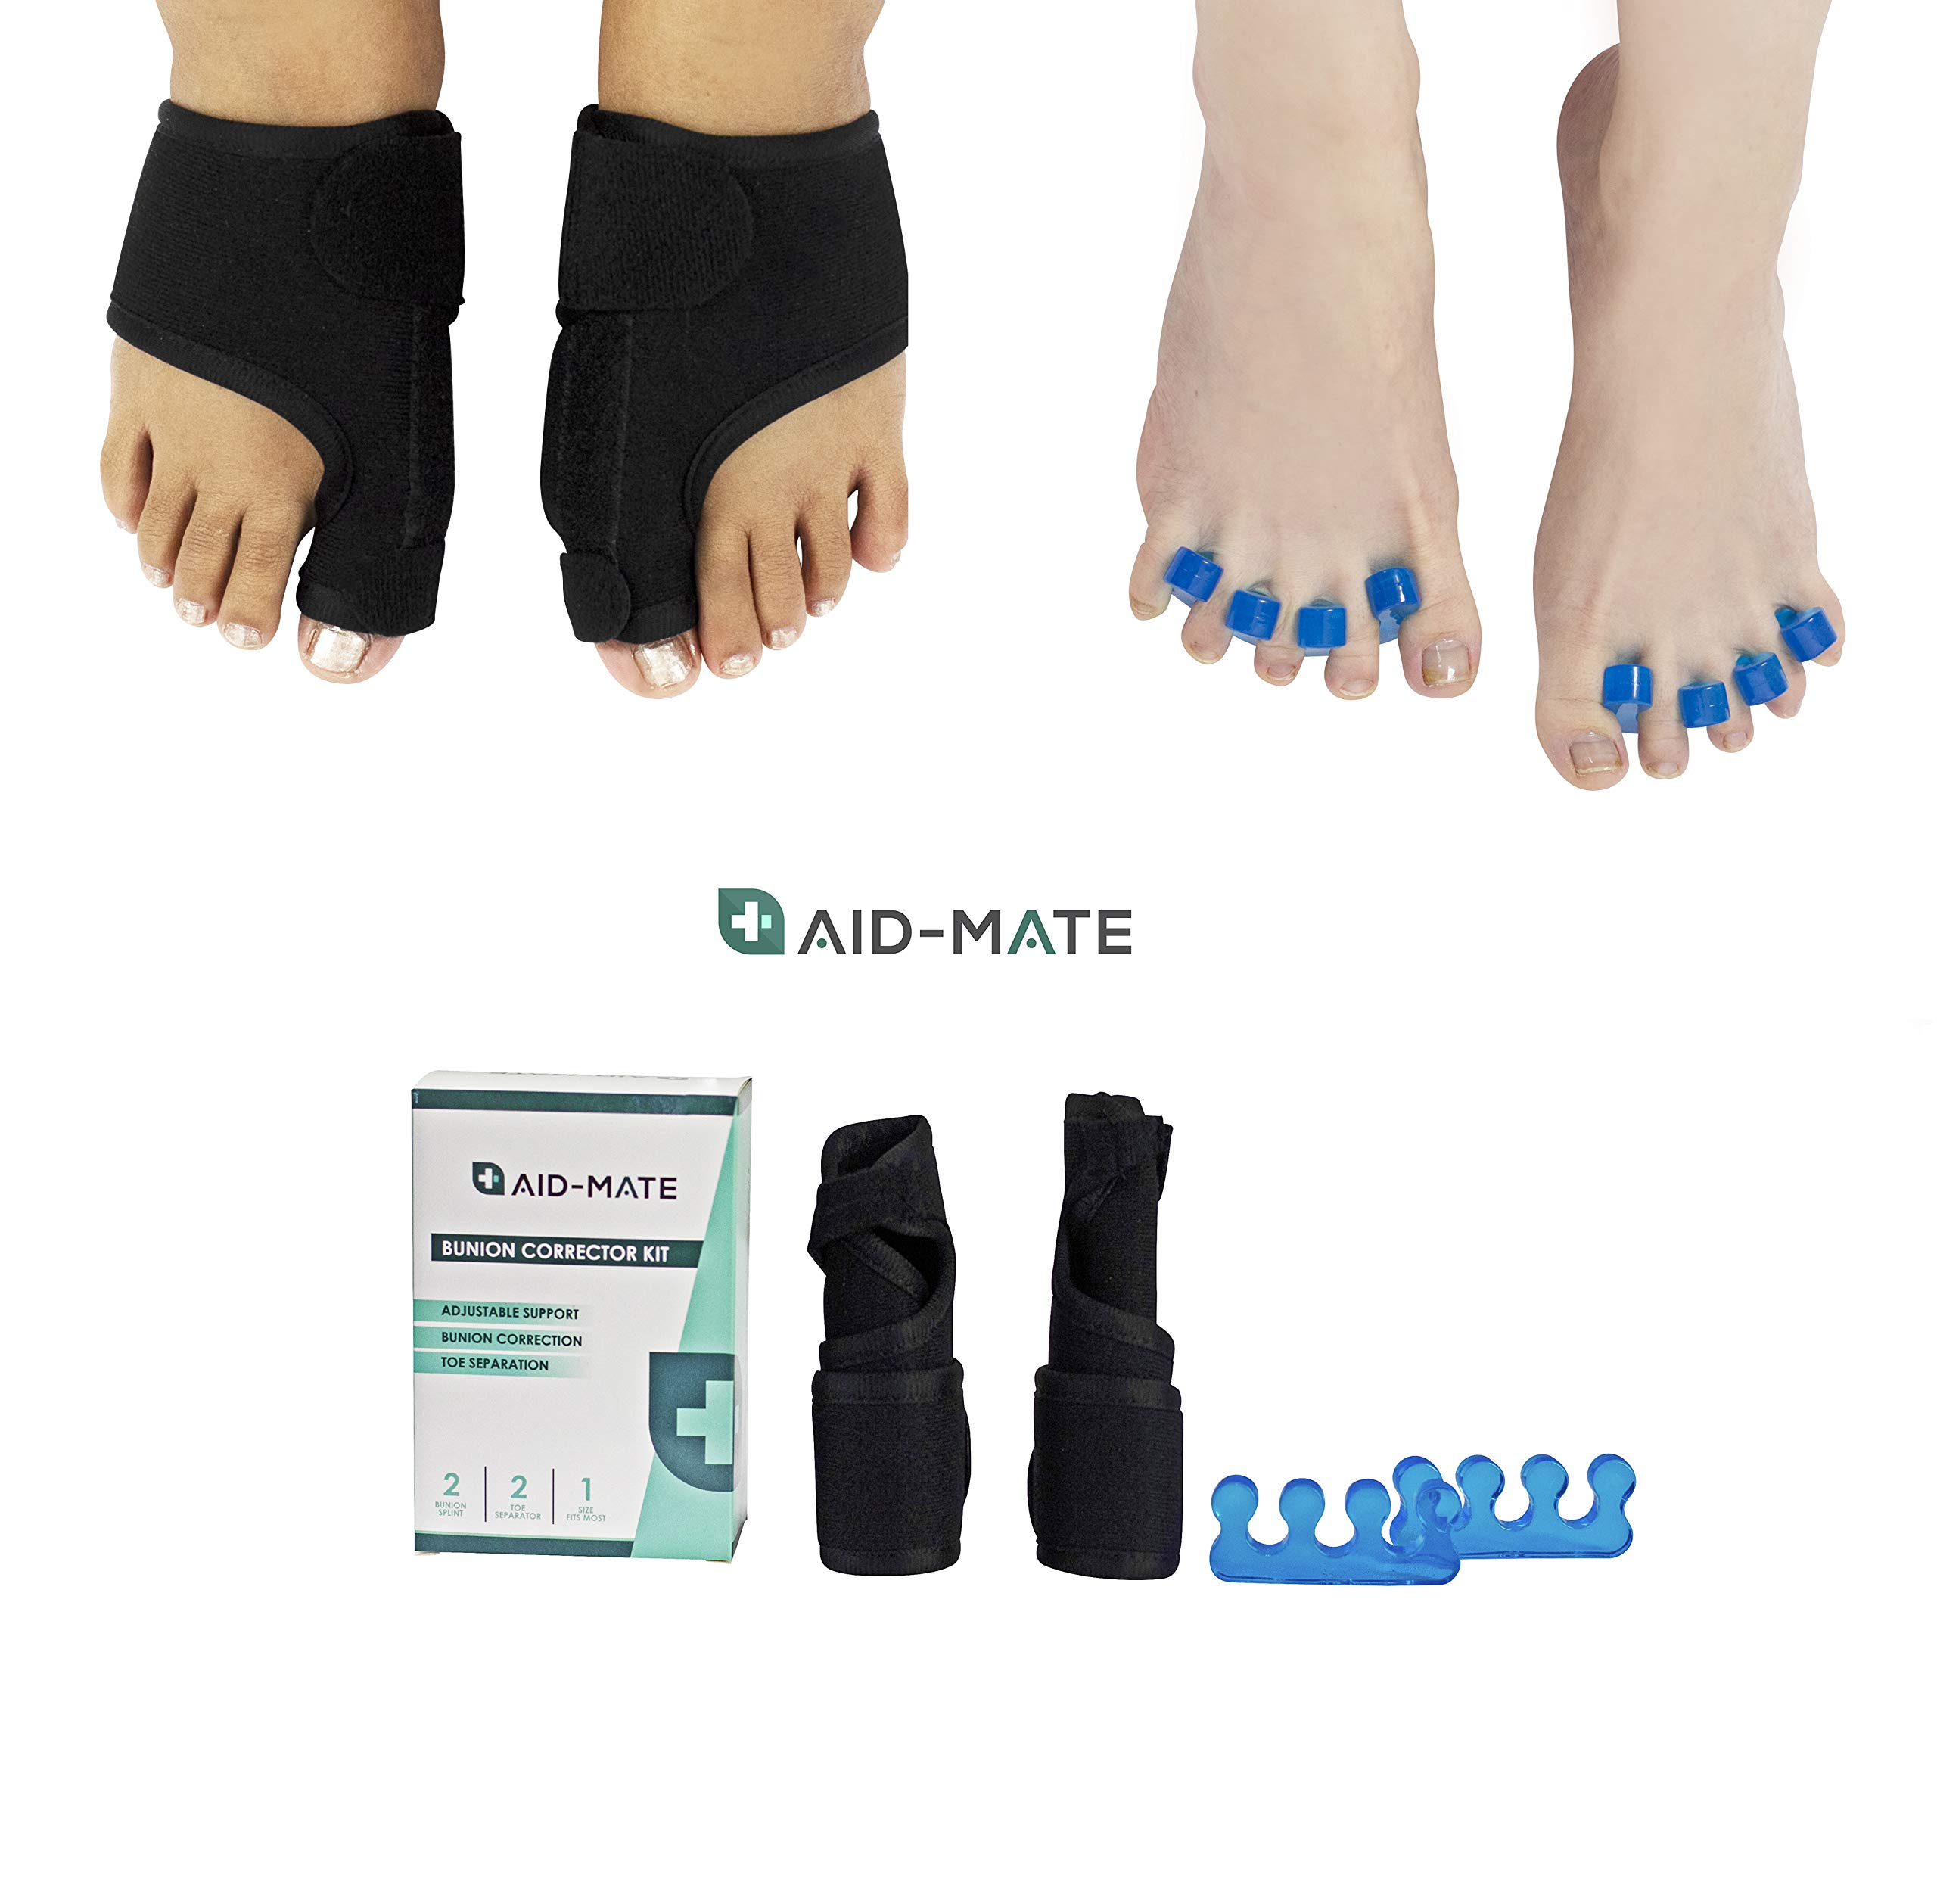 Aid-Mate Bunion Corrector and Bunion Relief Kit Bunion Splint Toe Separators Hammer Toe Straightener Toe Spacers Orthopedic Bunion Corrector for Men and Women by Aid-Mate